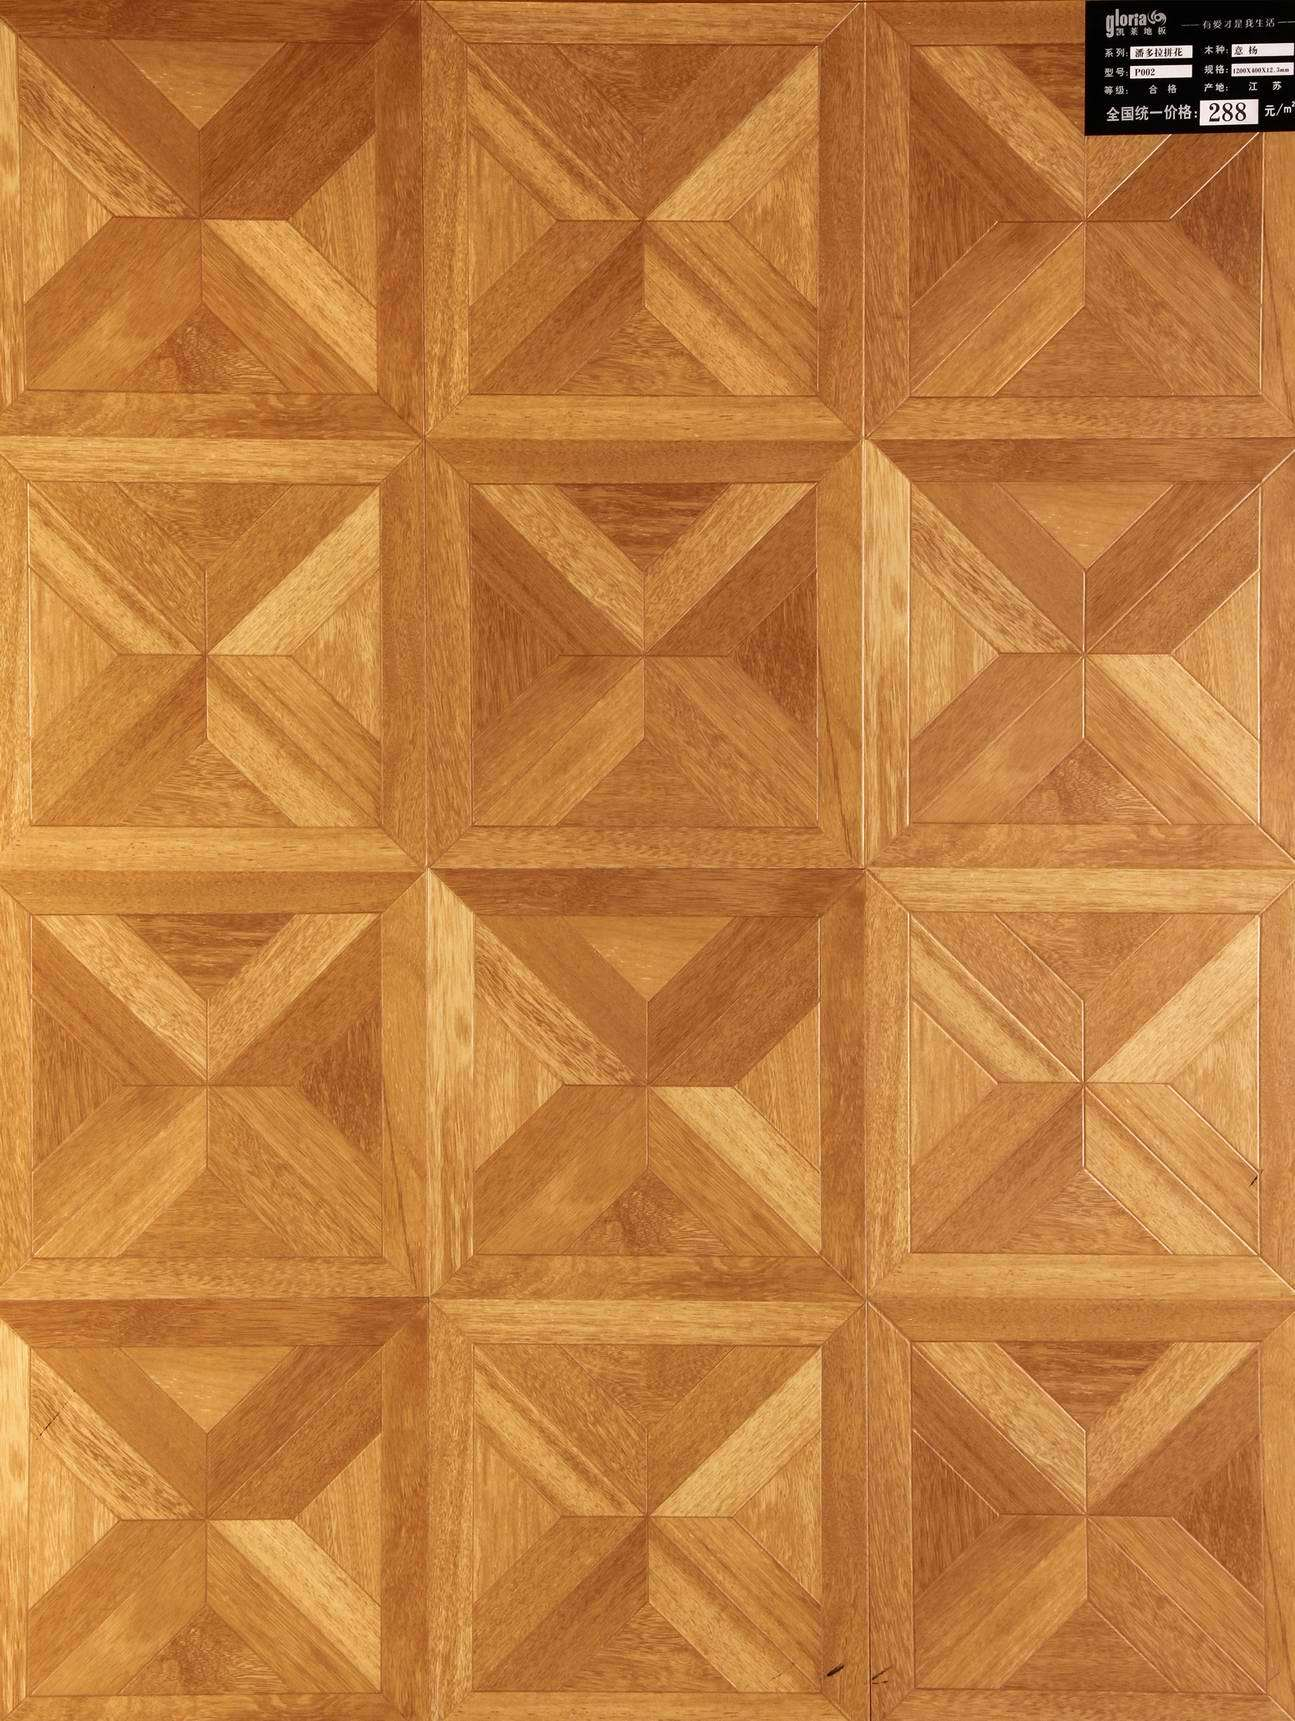 China Parquet Flooring (P002) - large image for Parquet